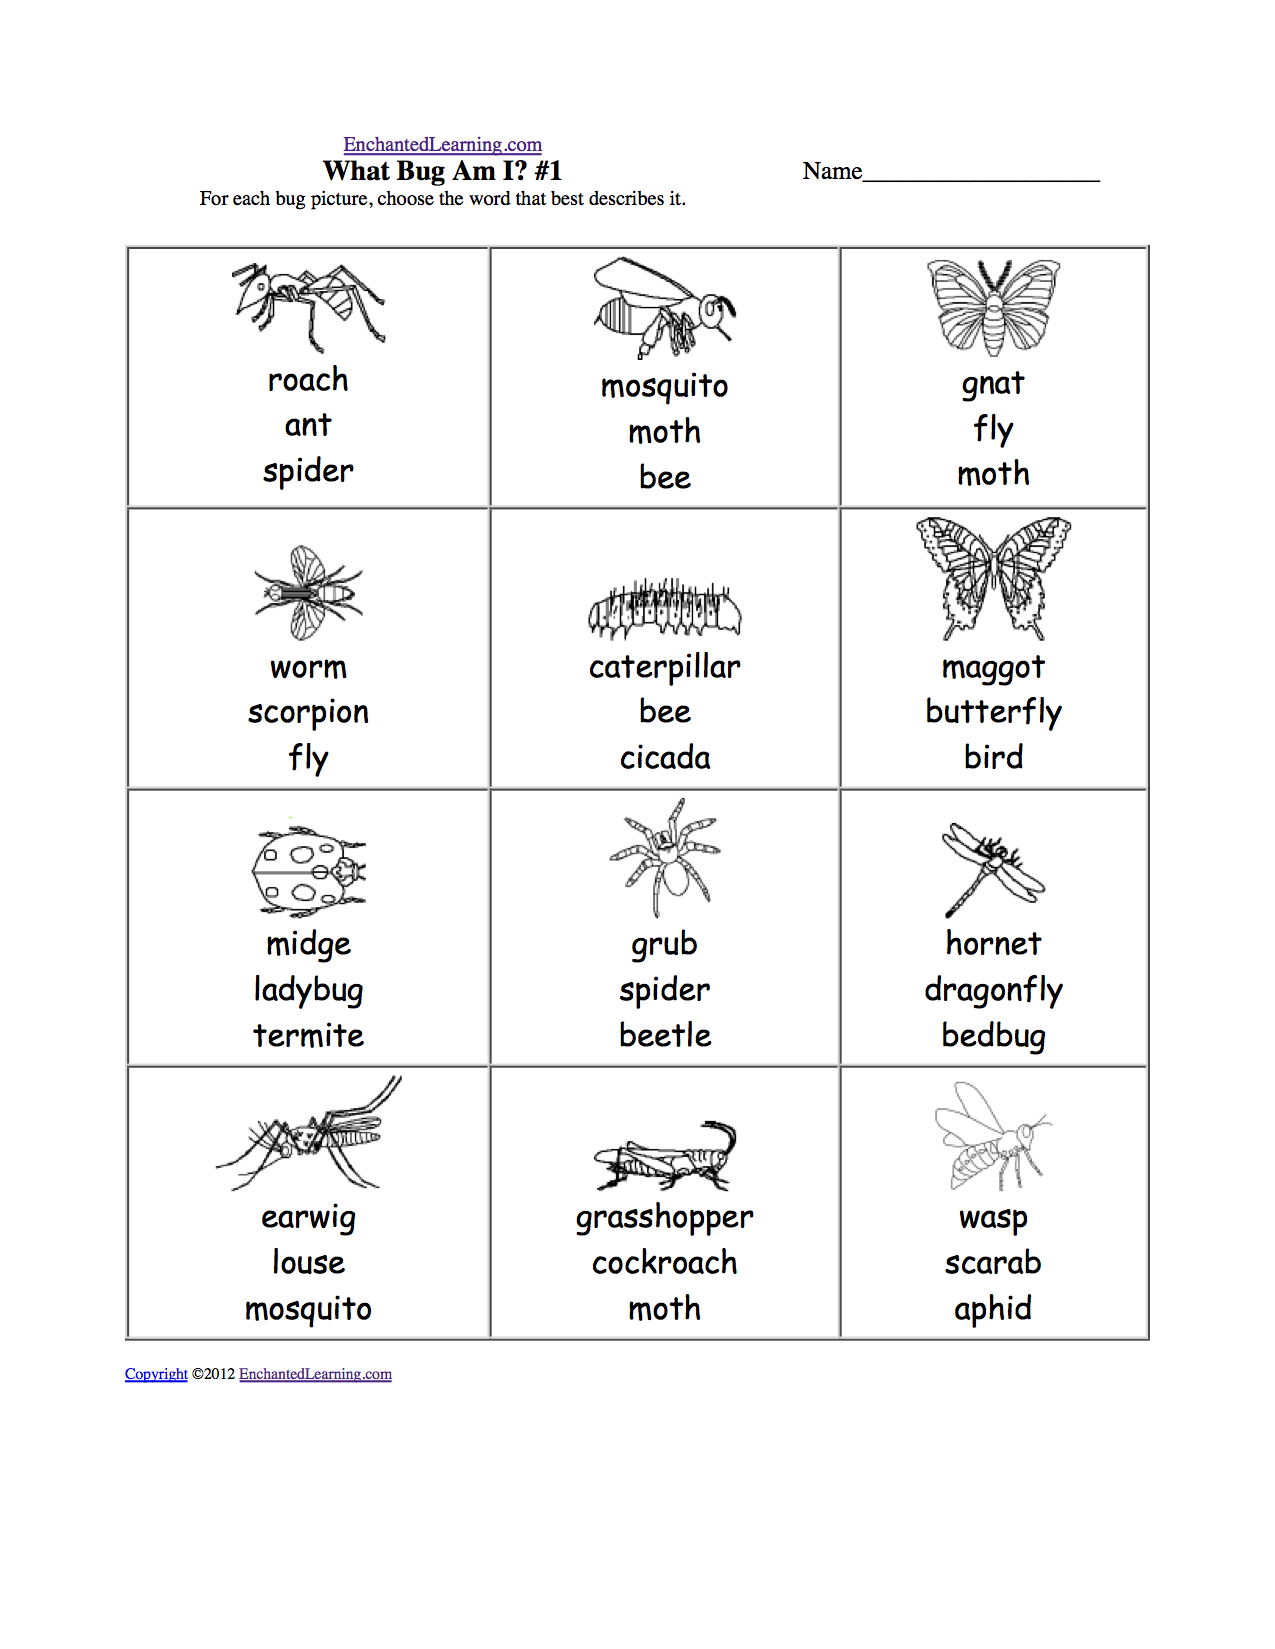 What am I? Worksheet Printouts - EnchantedLearning.com